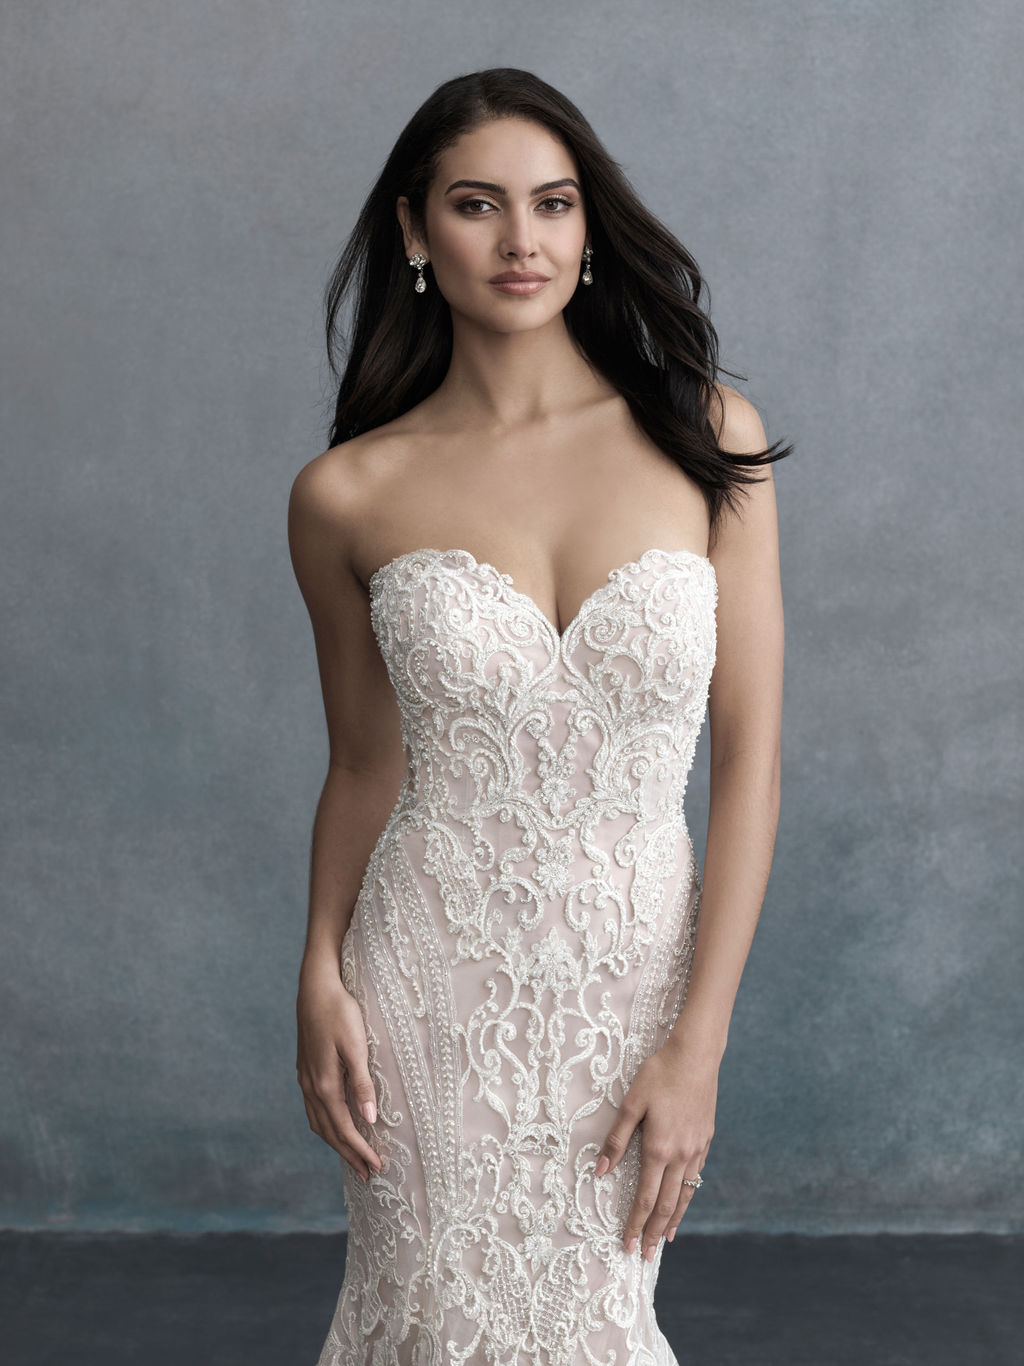 This strapless gown looks incredible on every bride and features a myriad of stunning details that have to be seen to be believed.